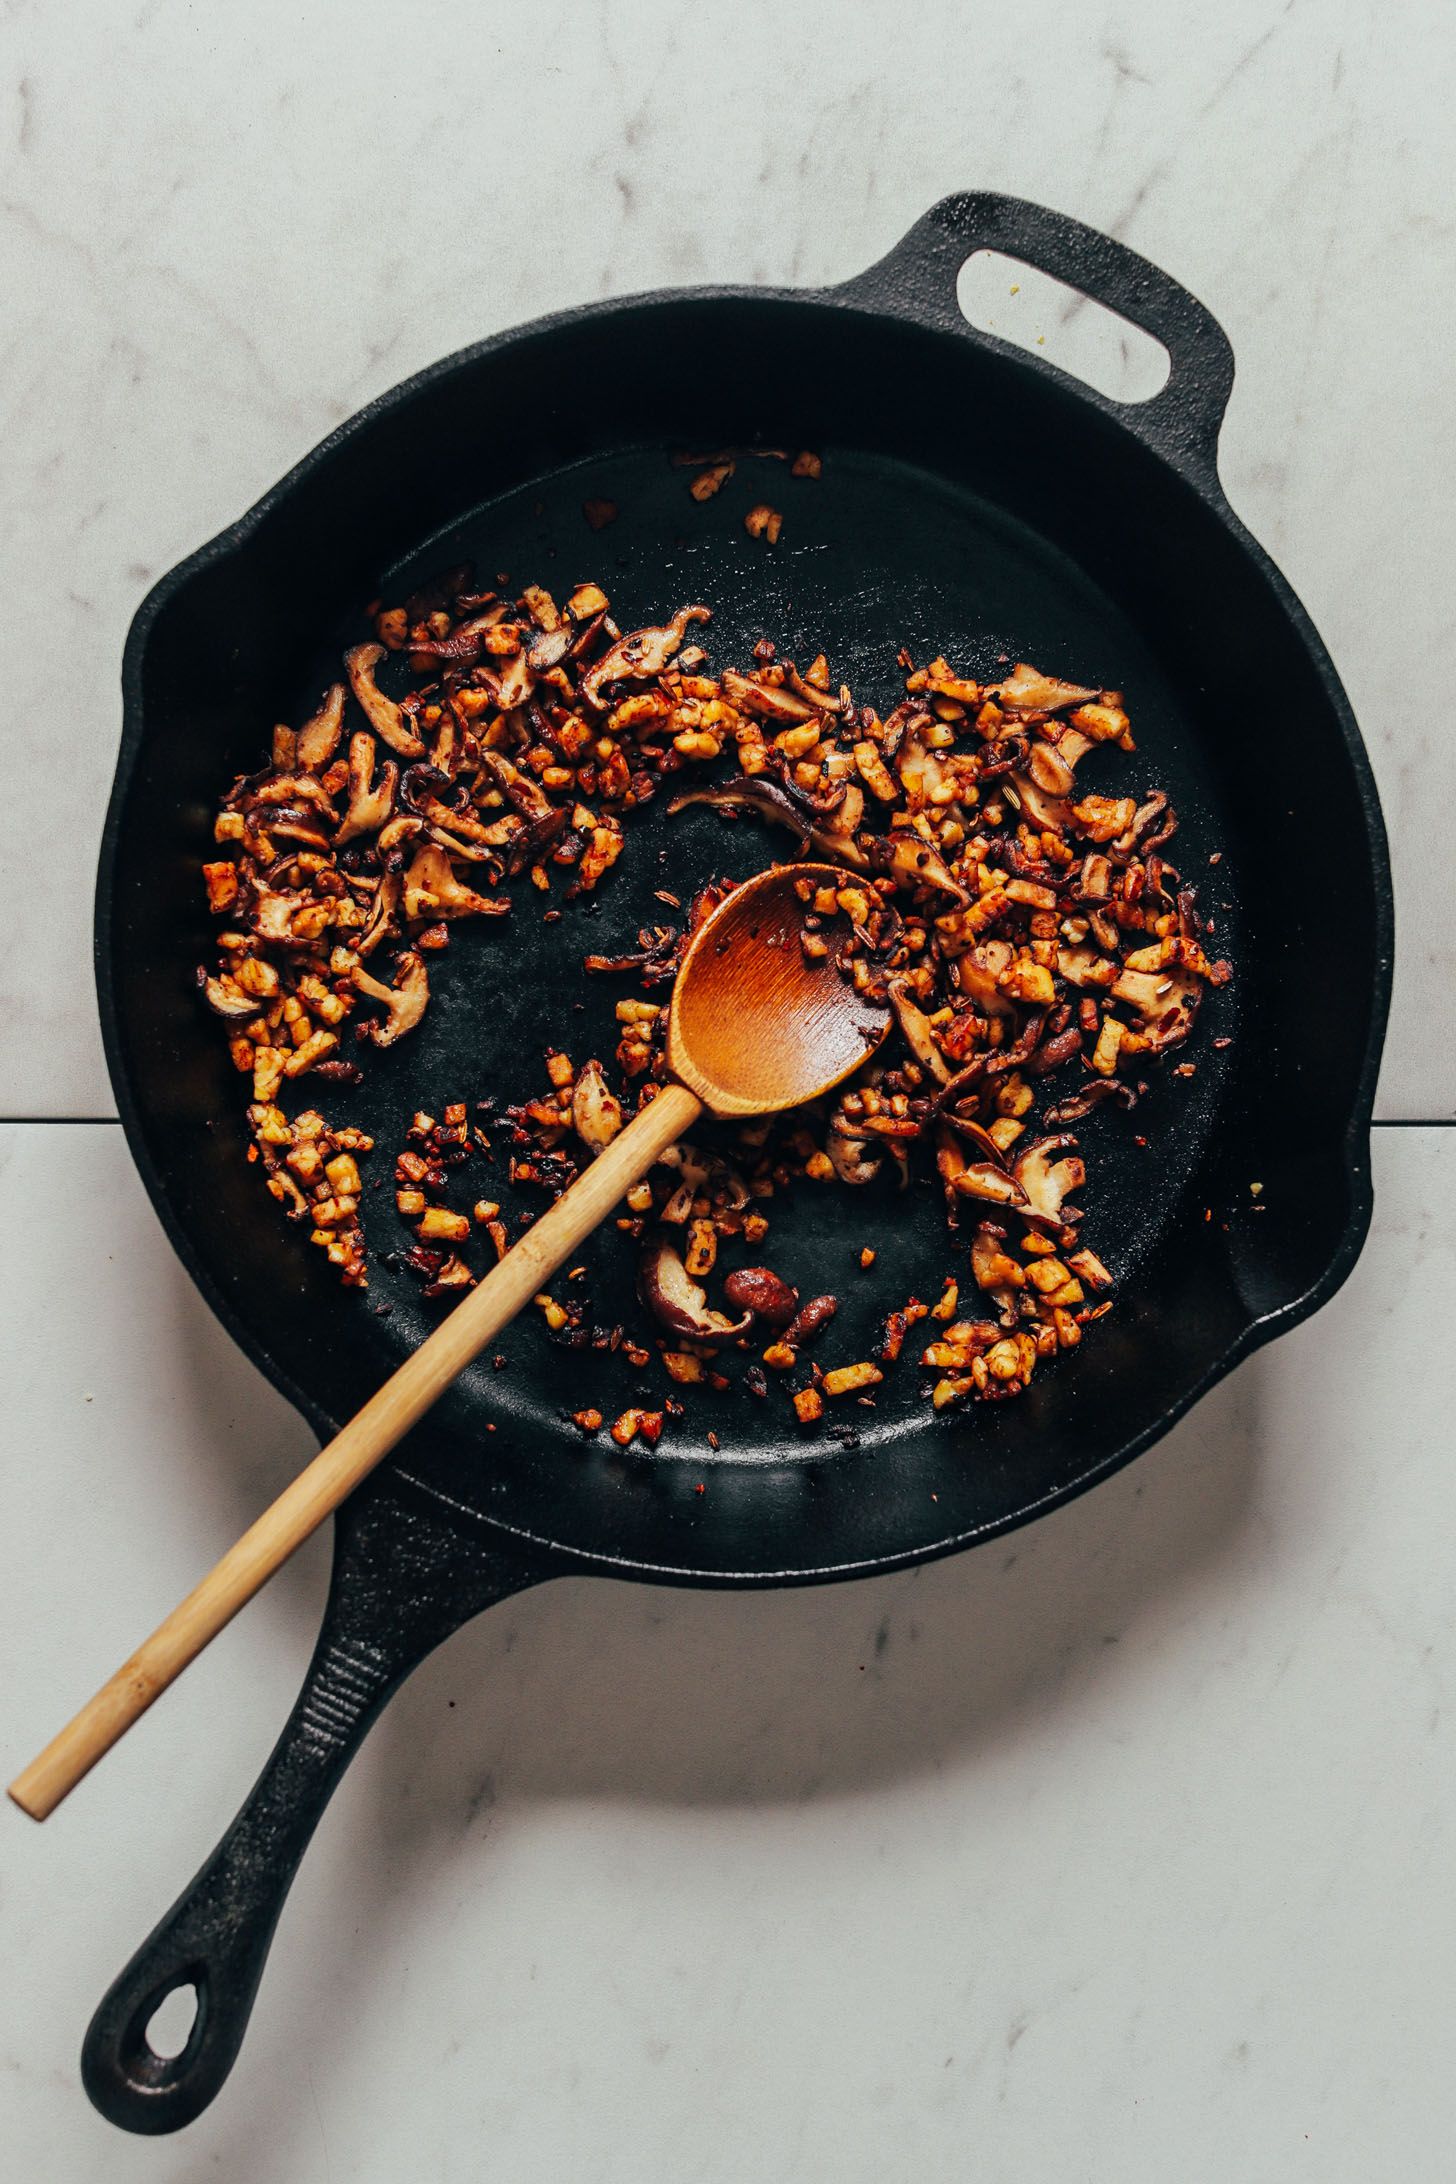 Using a wooden spoon to sauté mushrooms and tempeh in a cast-iron skillet